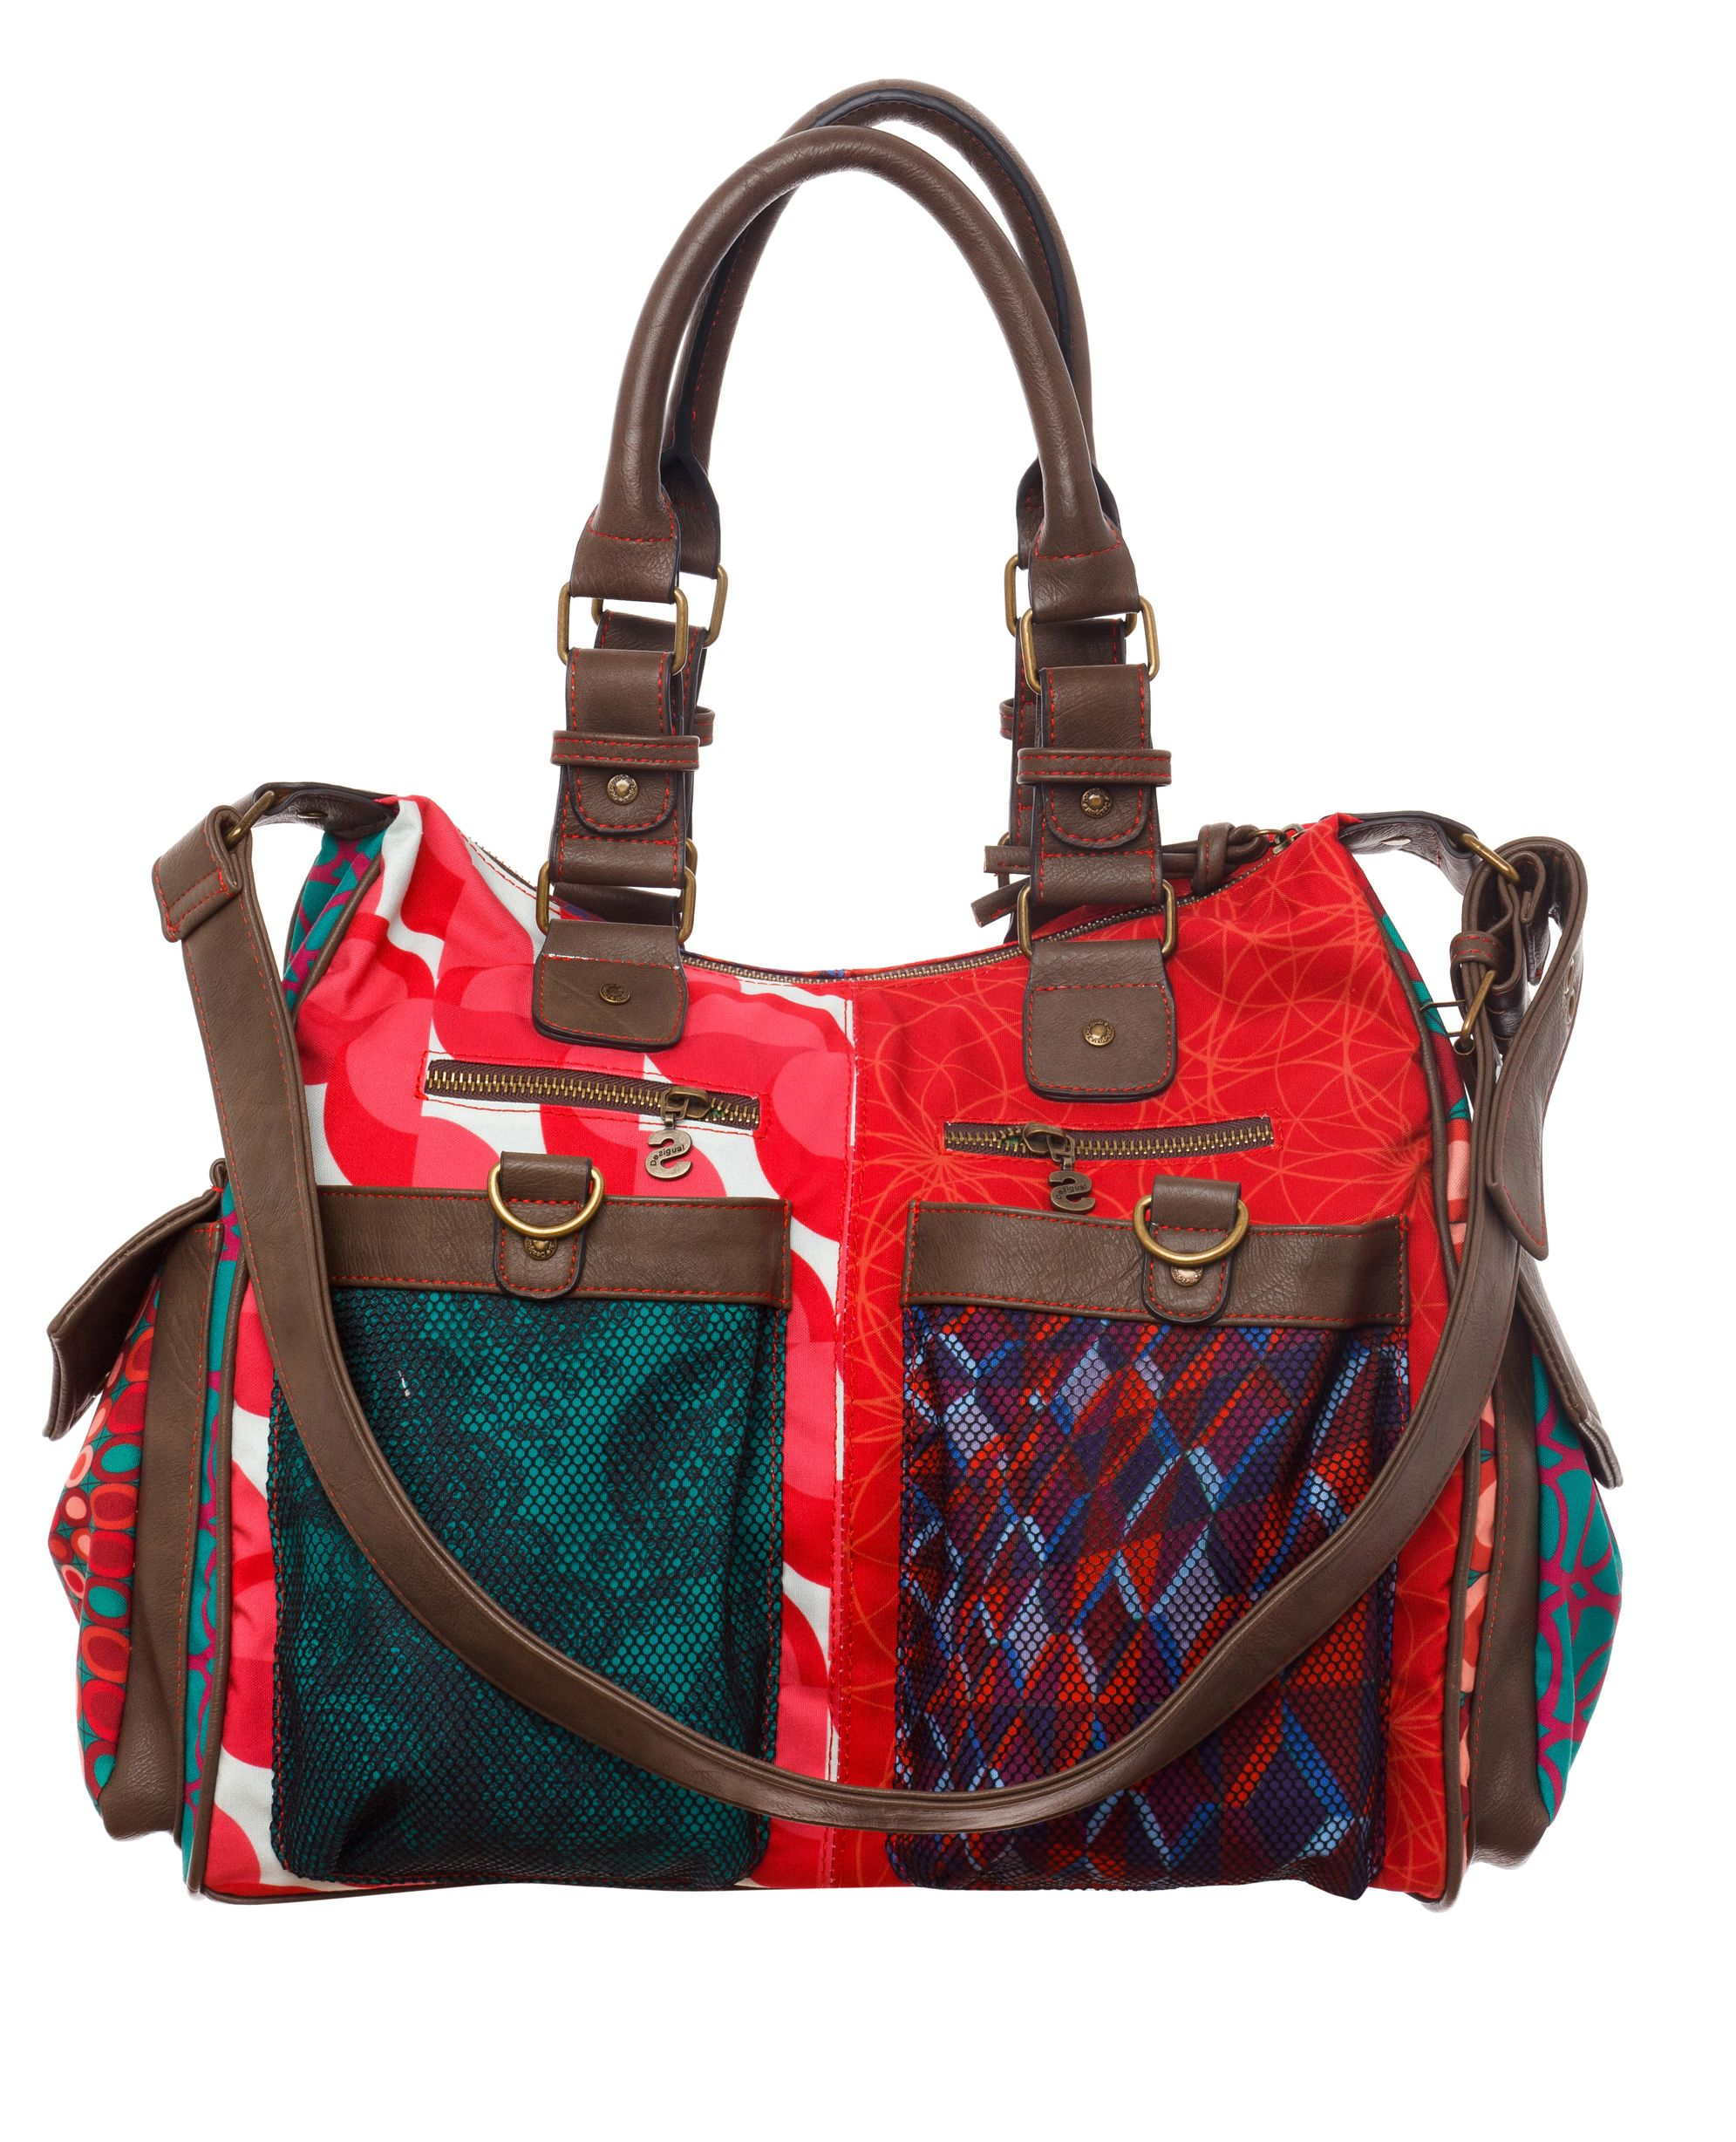 London annelise bag